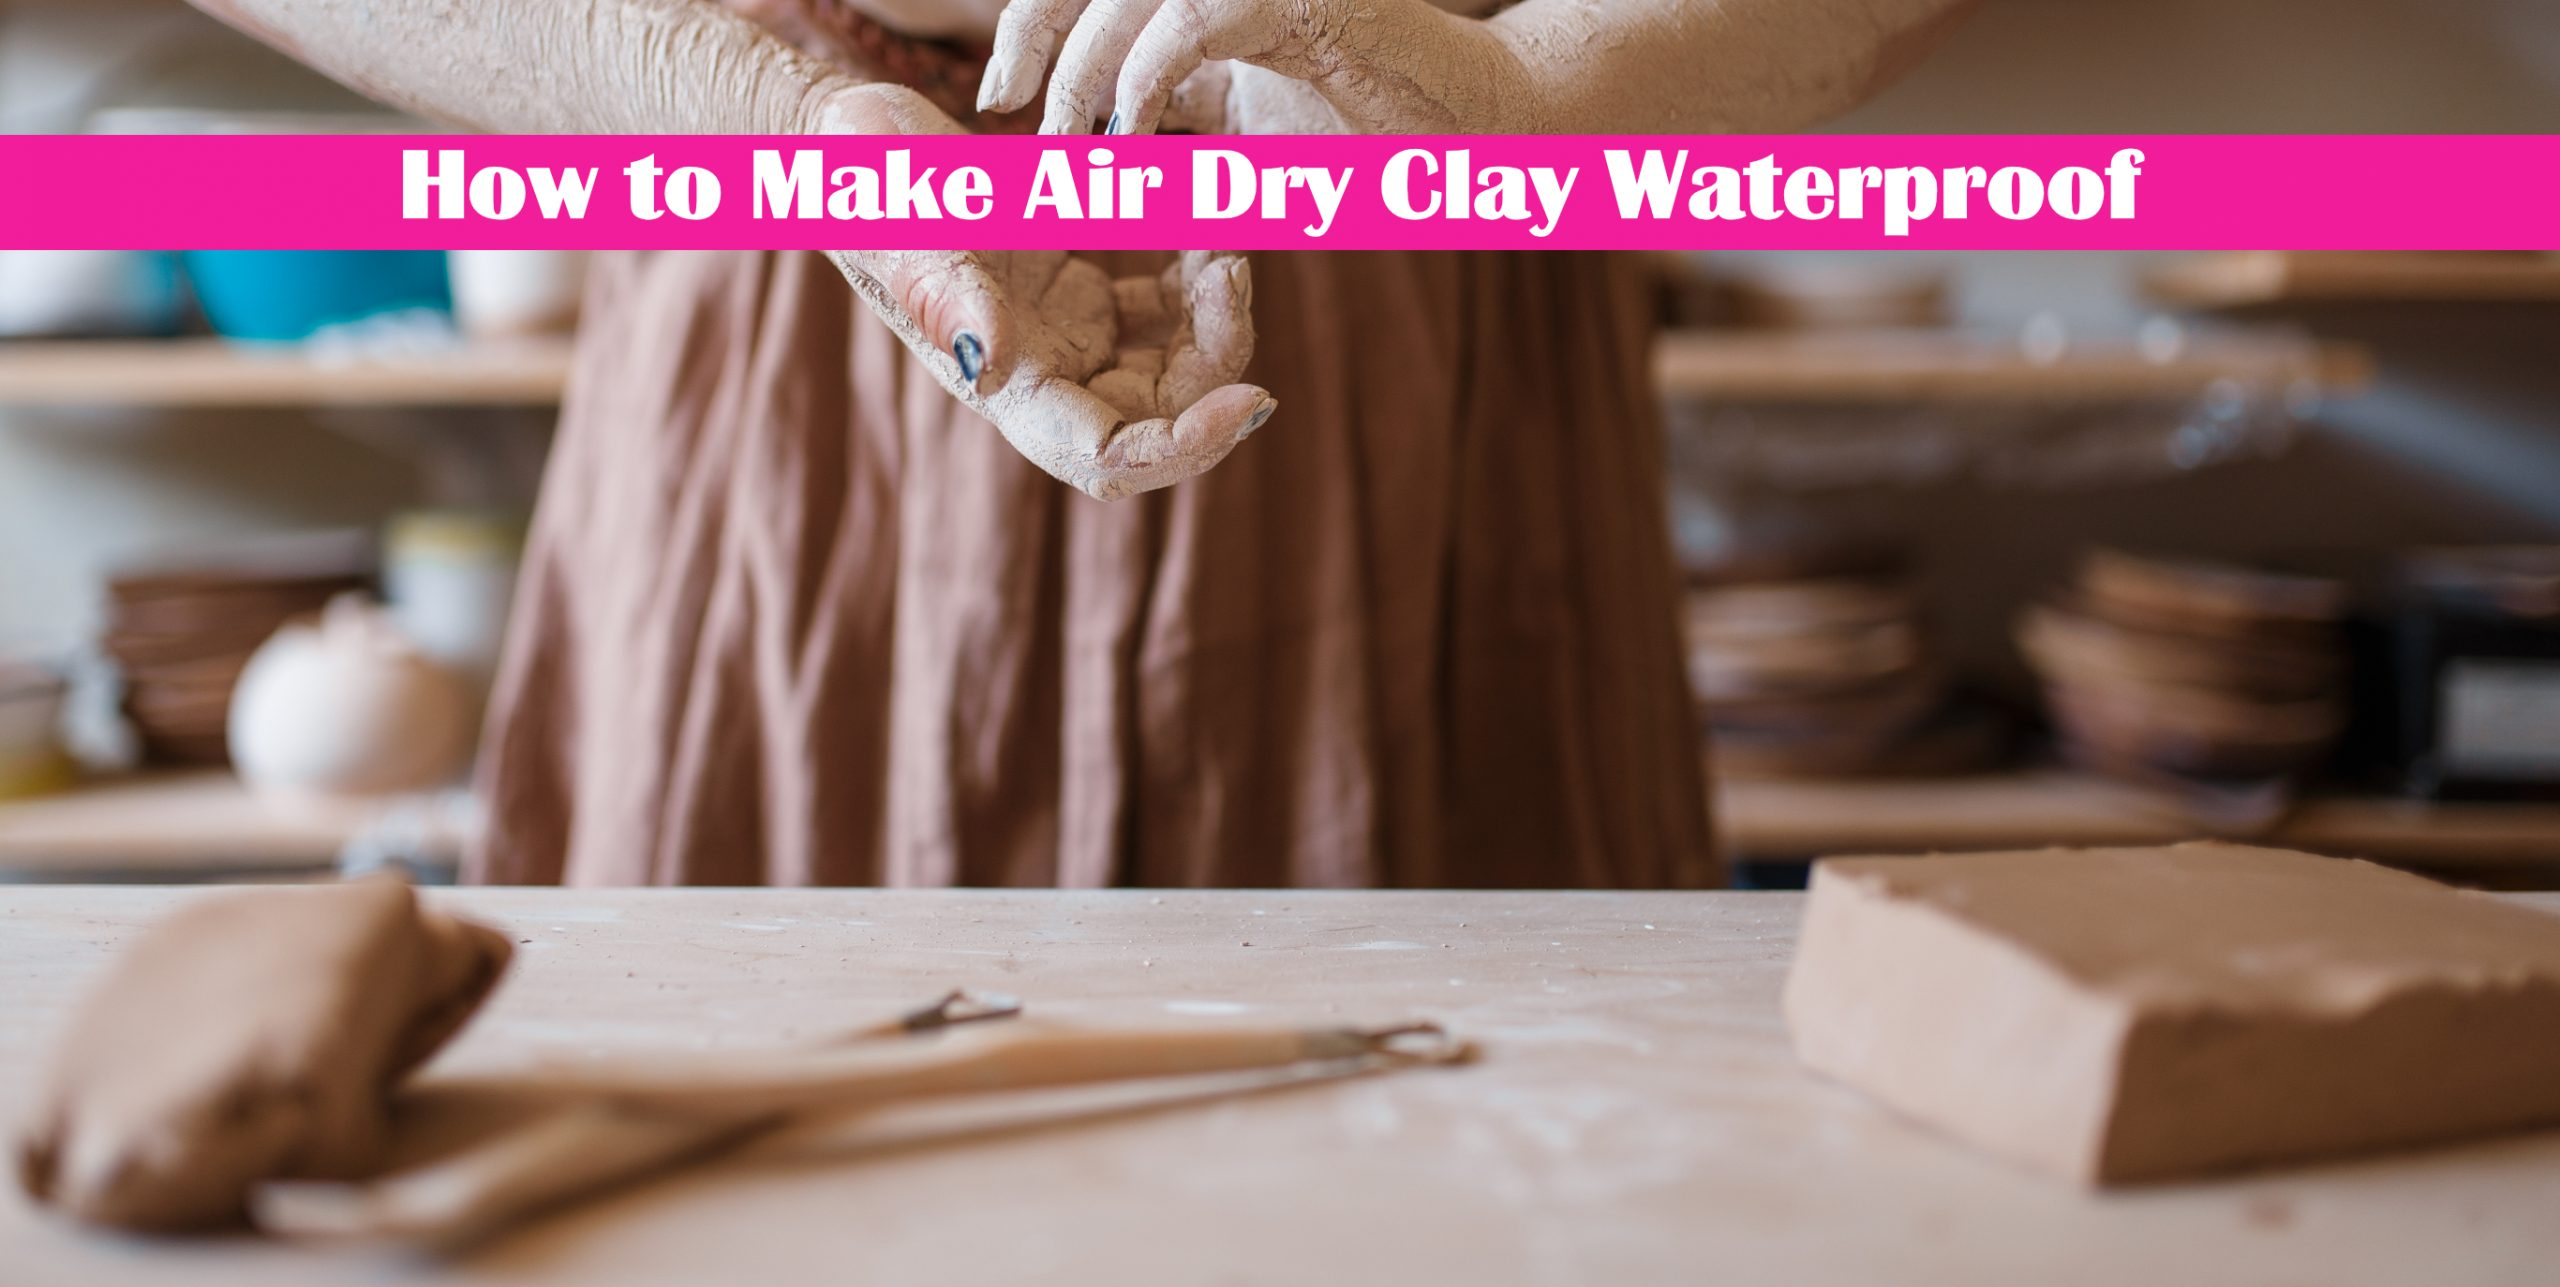 How to Make Air Dry Clay Waterproof